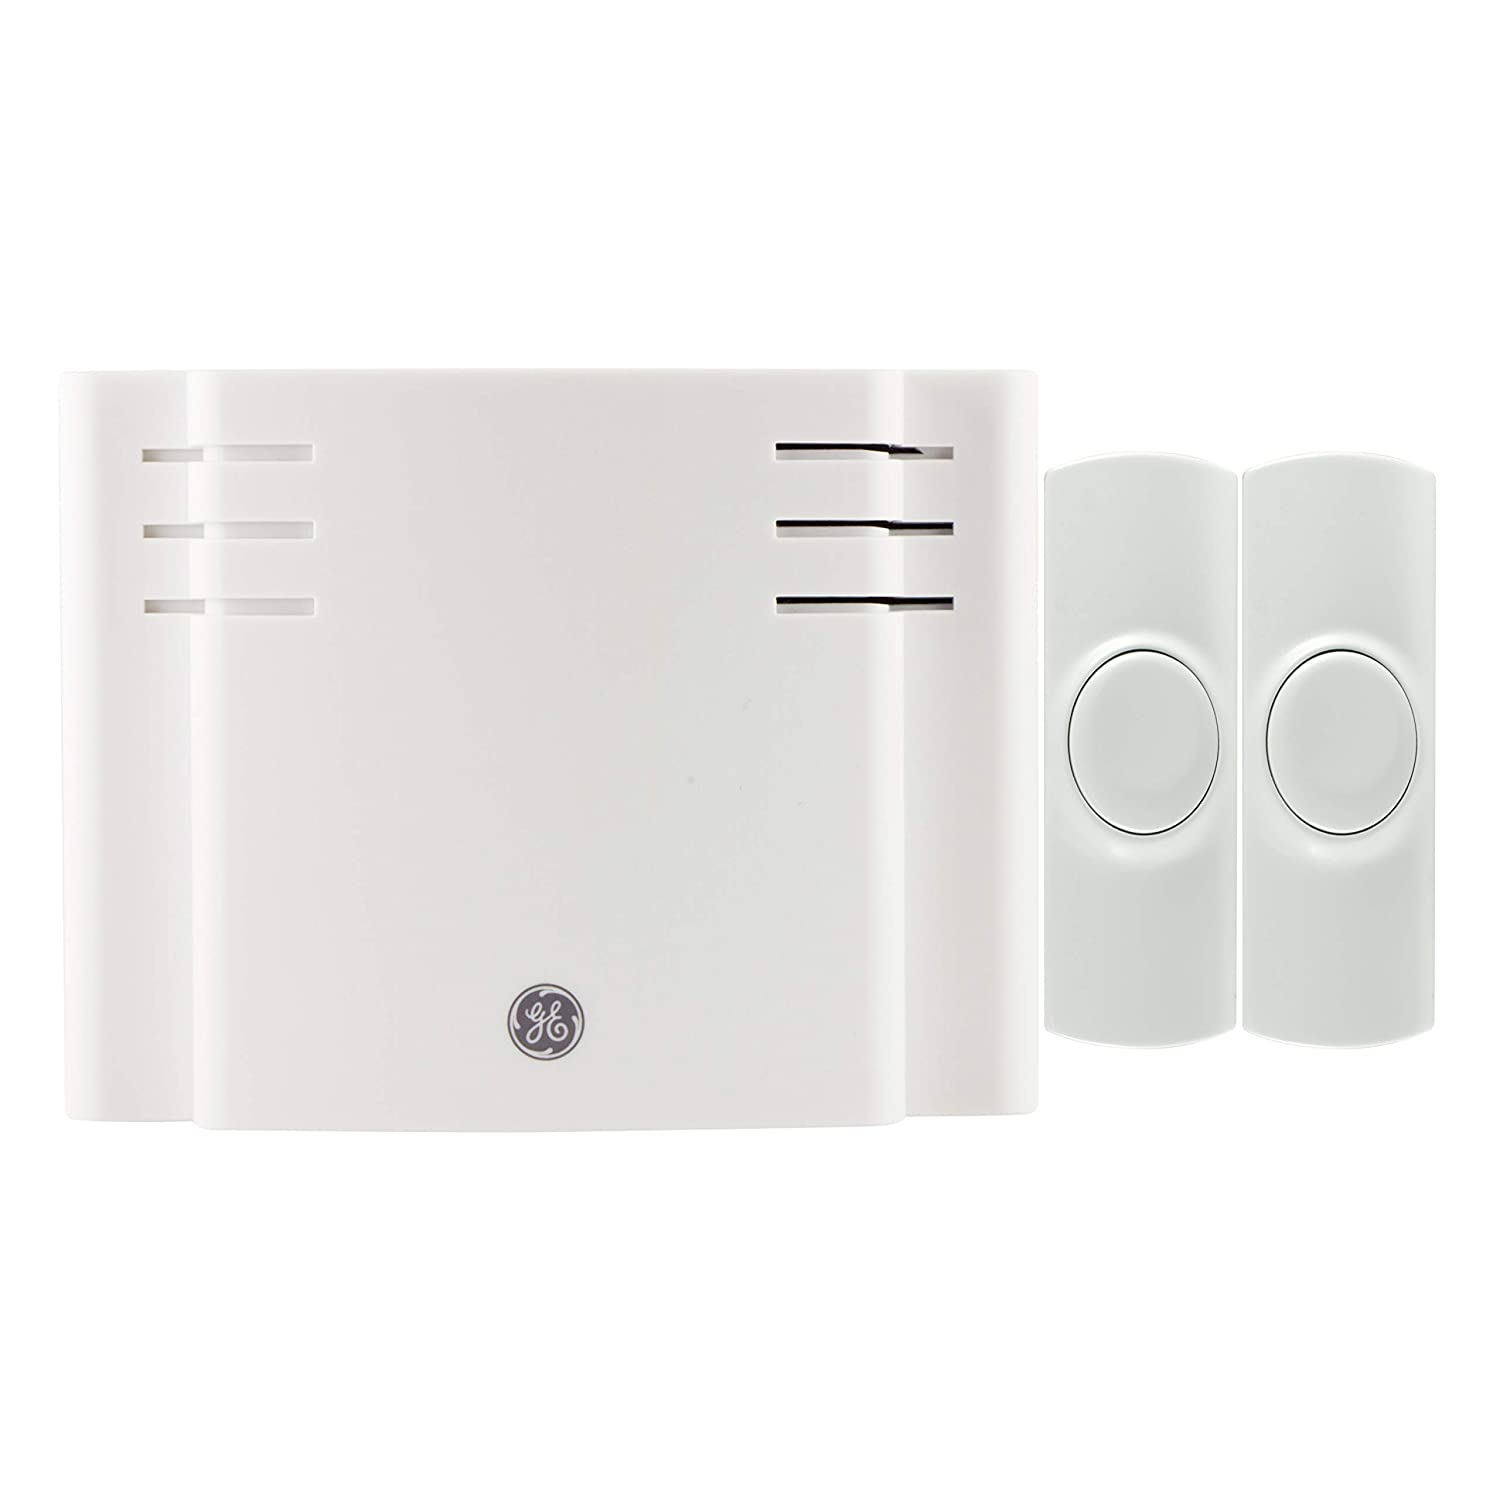 GE Wireless Doorbell Kit, Battery-Operated, 8 Melodies, 1 Receiver, 2 Push Buttons, 4 Volume Levels, 150 Ft. Range, Mountable, White, 19297